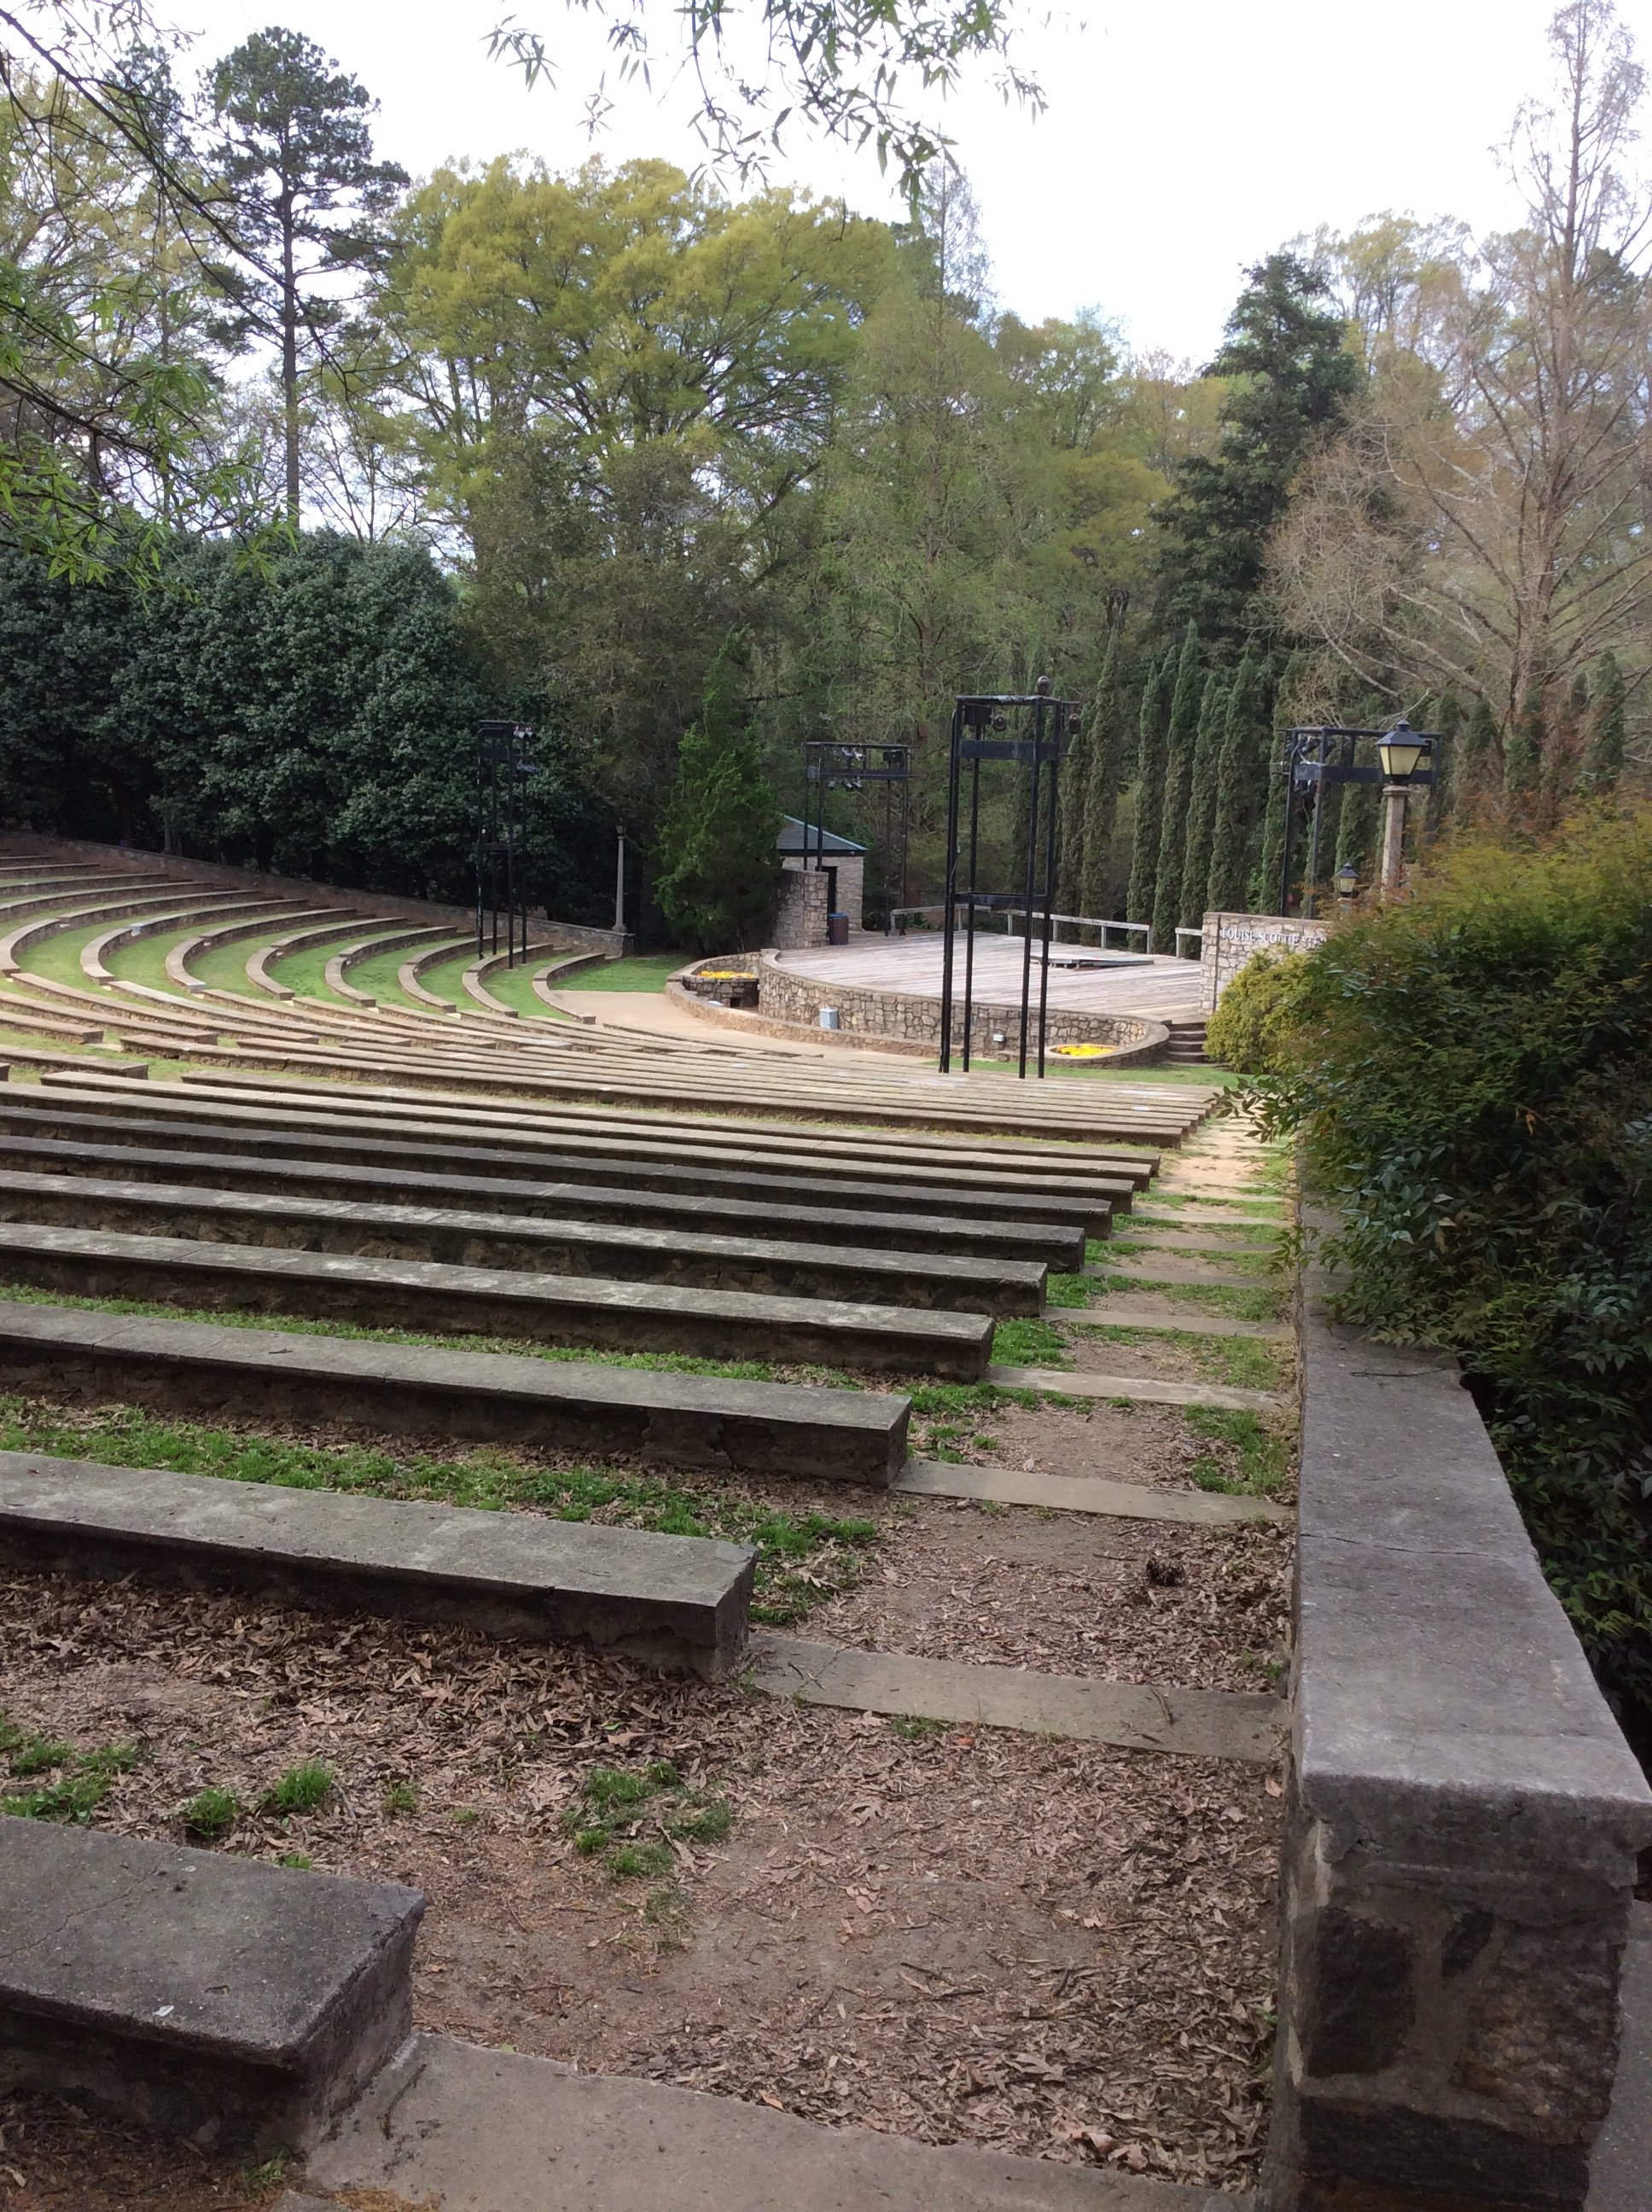 Open air amphitheater